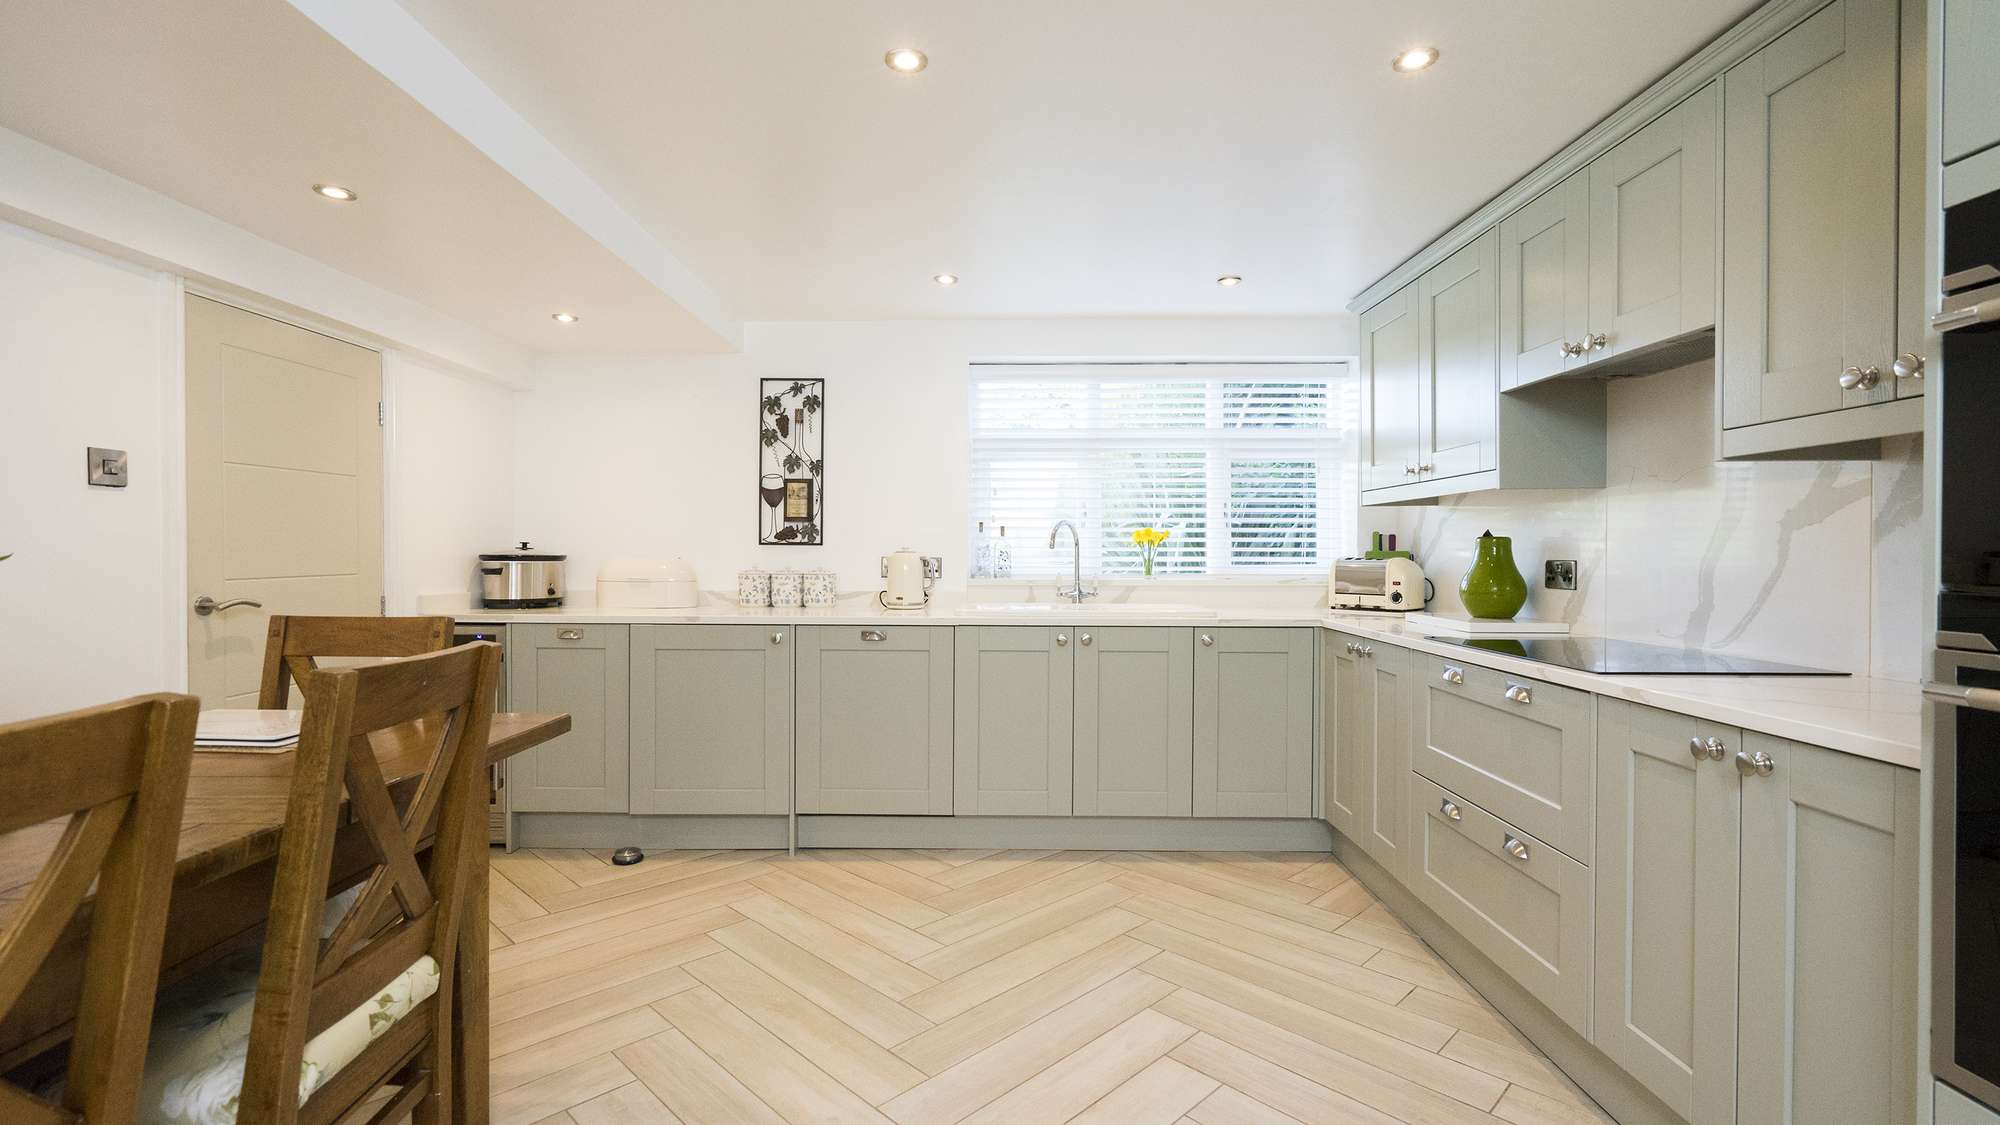 Straight on view of this large shaker kitchen in olive green with white marble style worktops and matching backsplashes.